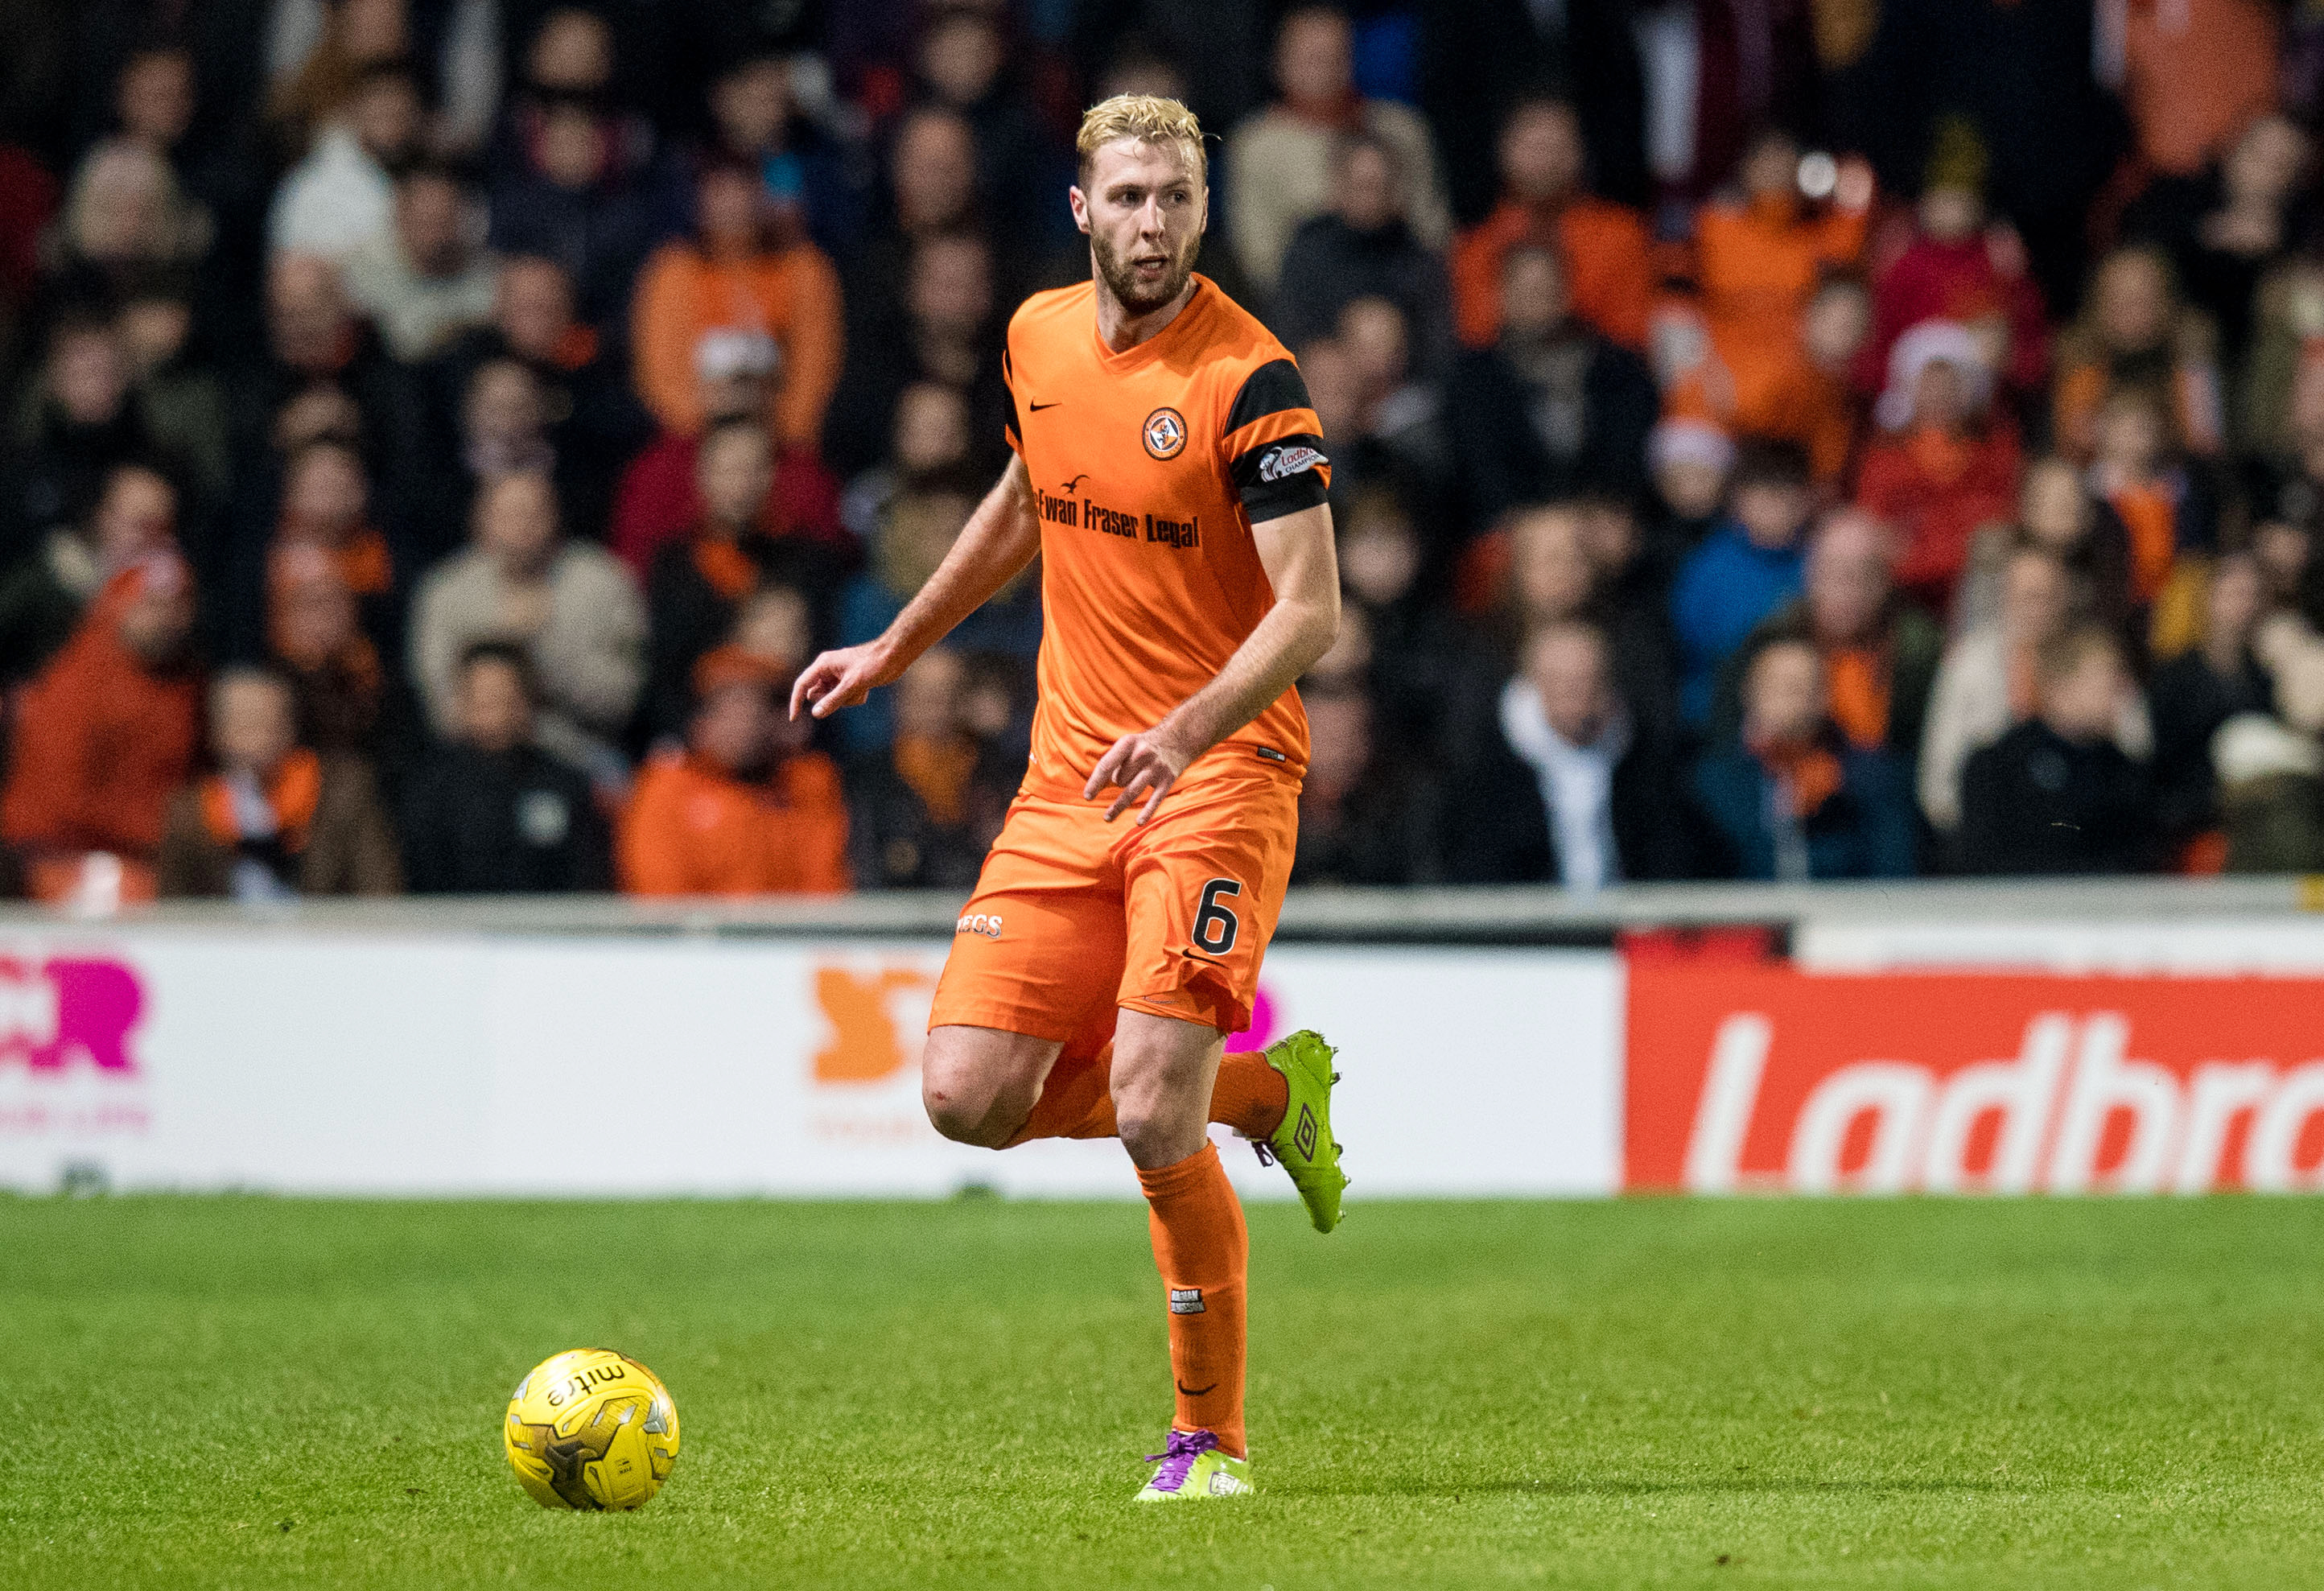 Lewis Toshney of Dundee United in action